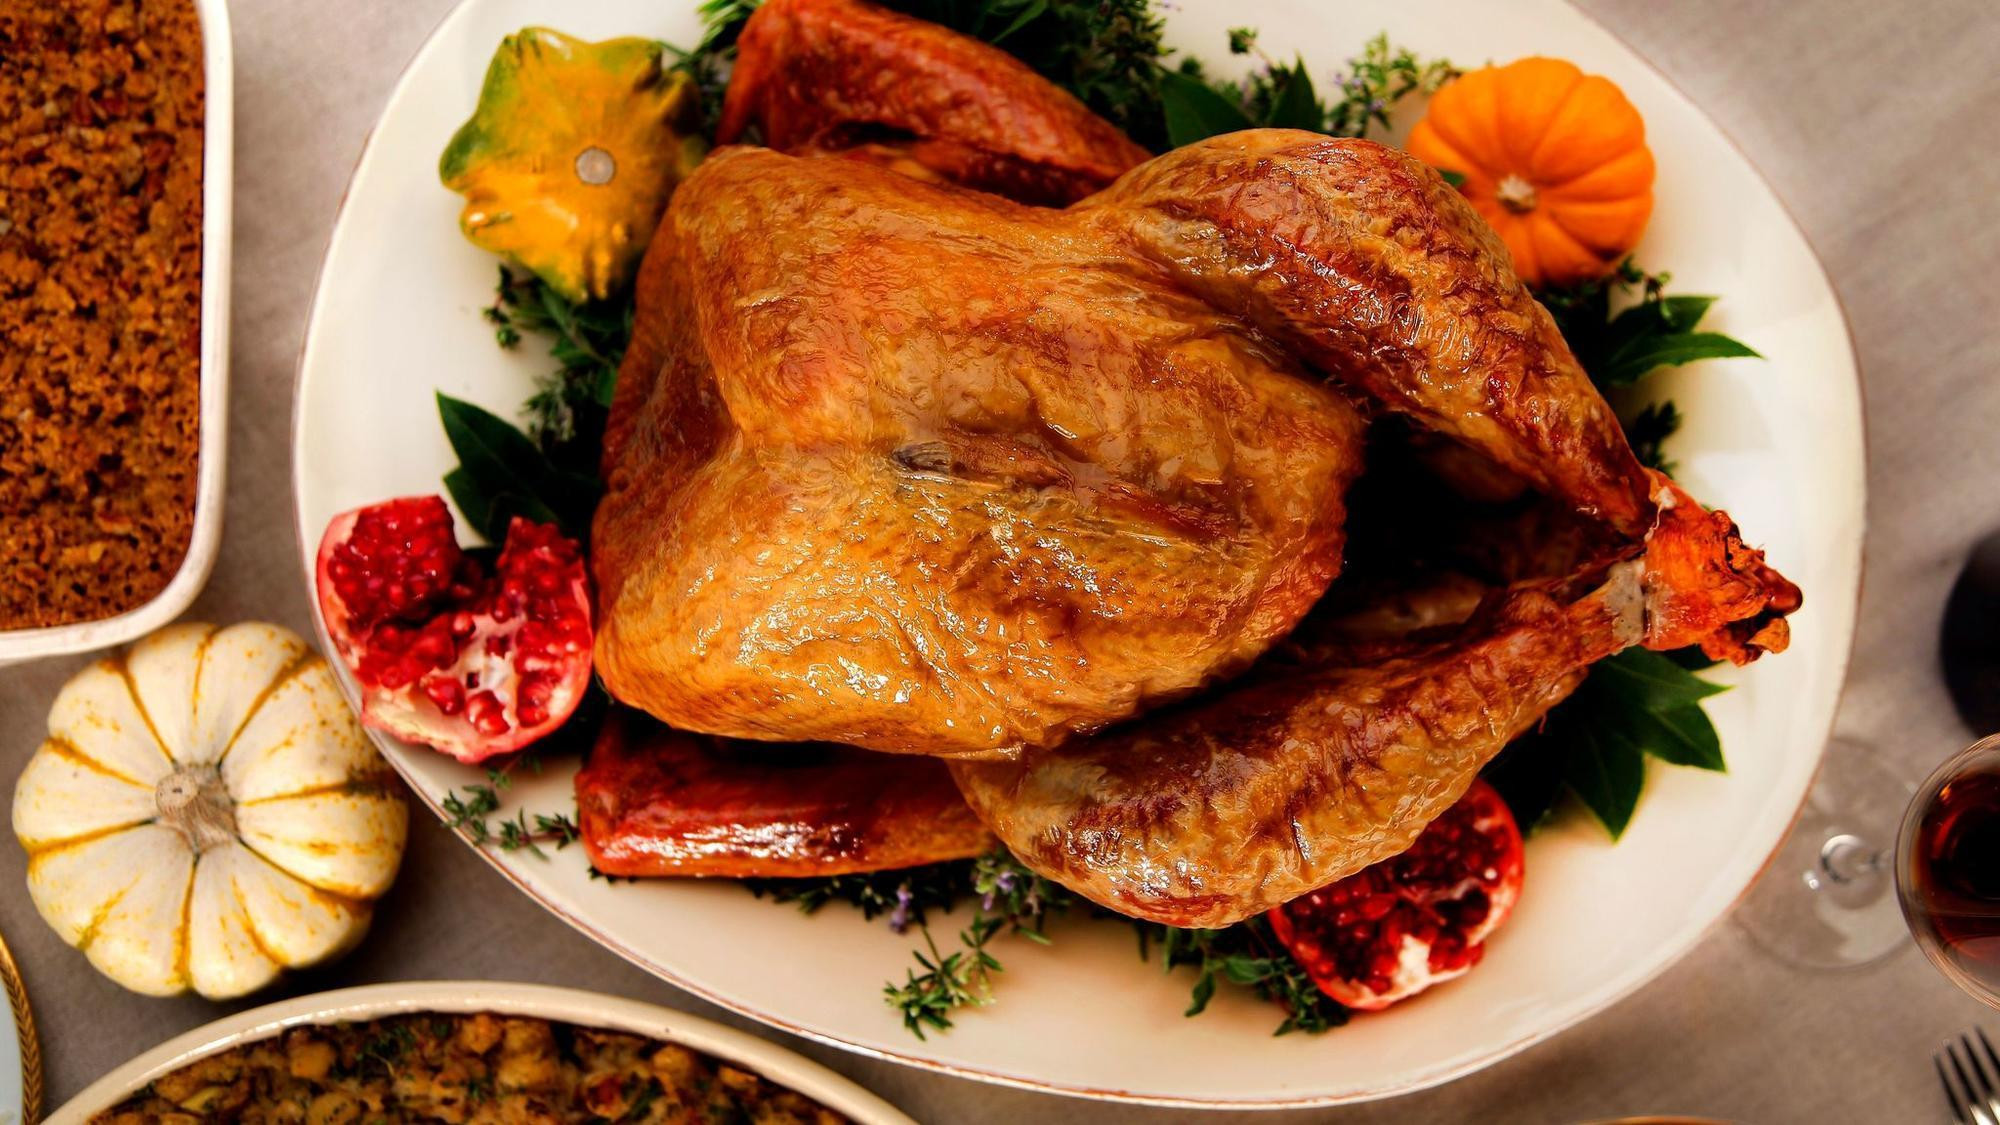 Cooked Thanksgiving Turkey  Turkey 101 How to cook a Thanksgiving turkey LA Times